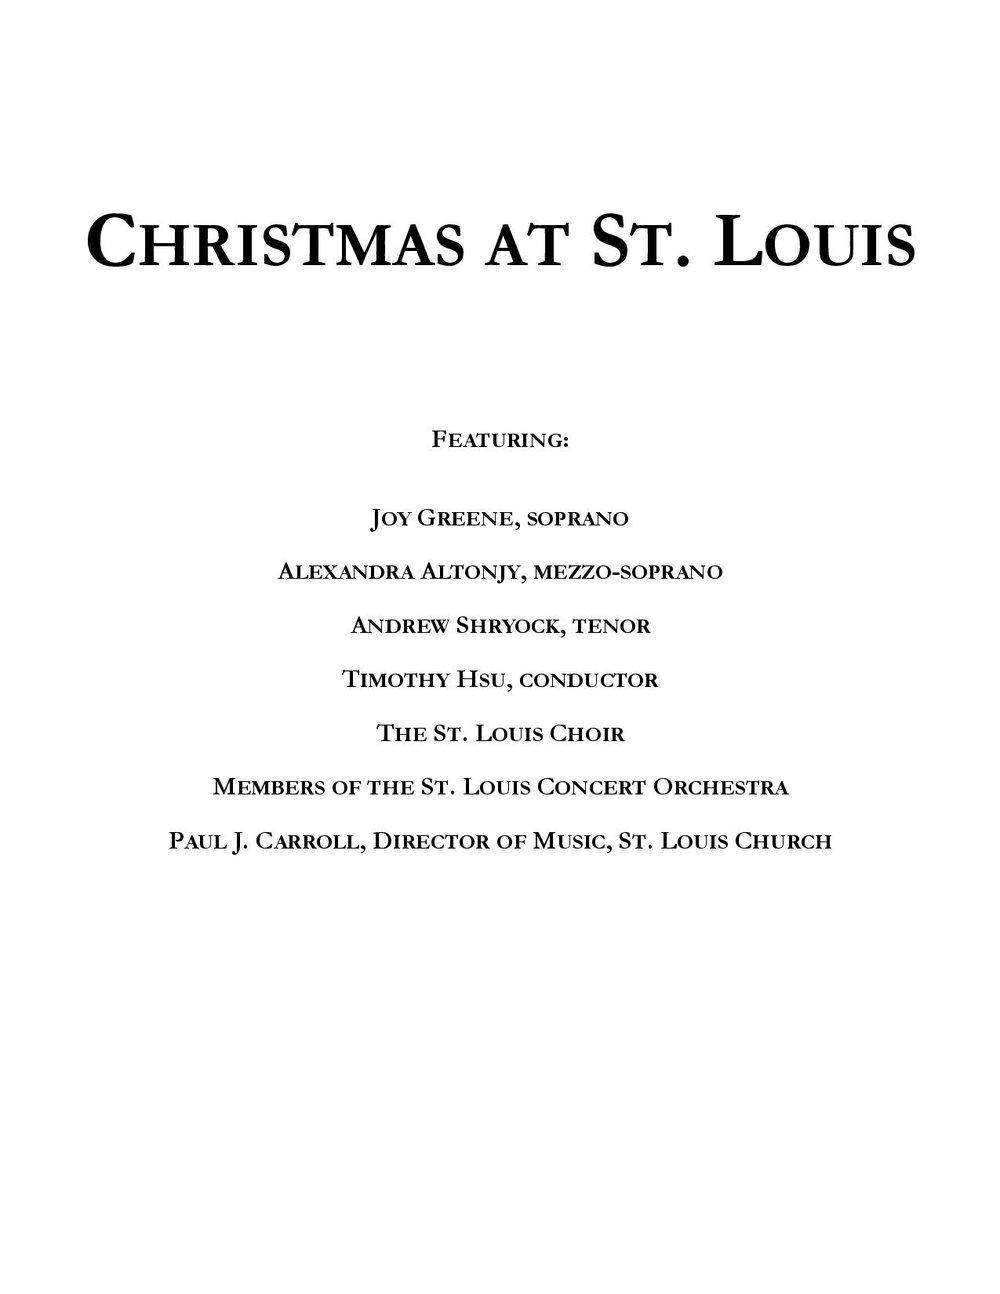 2012-12-16 Program Draft - 2012-12-11 v2-page-002.jpg